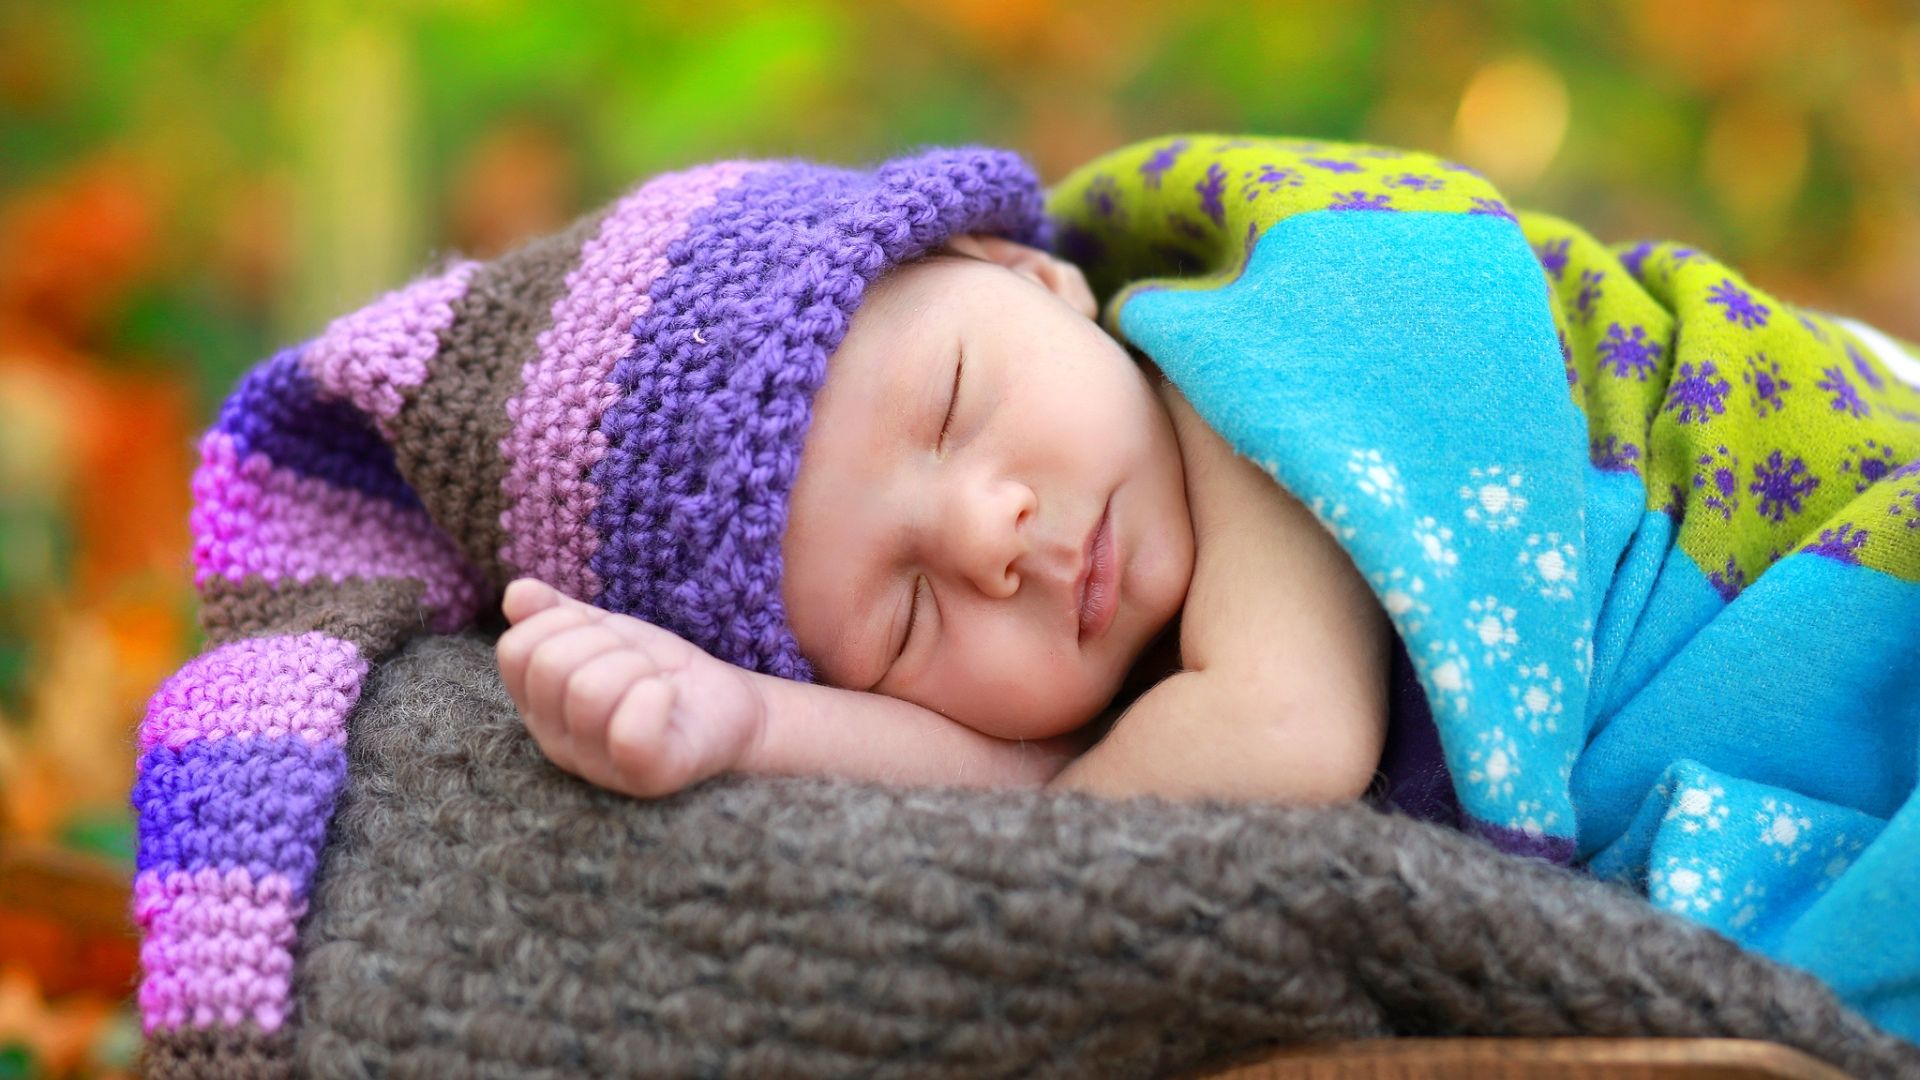 Cute Sleeping With Hat Baby Pinterest